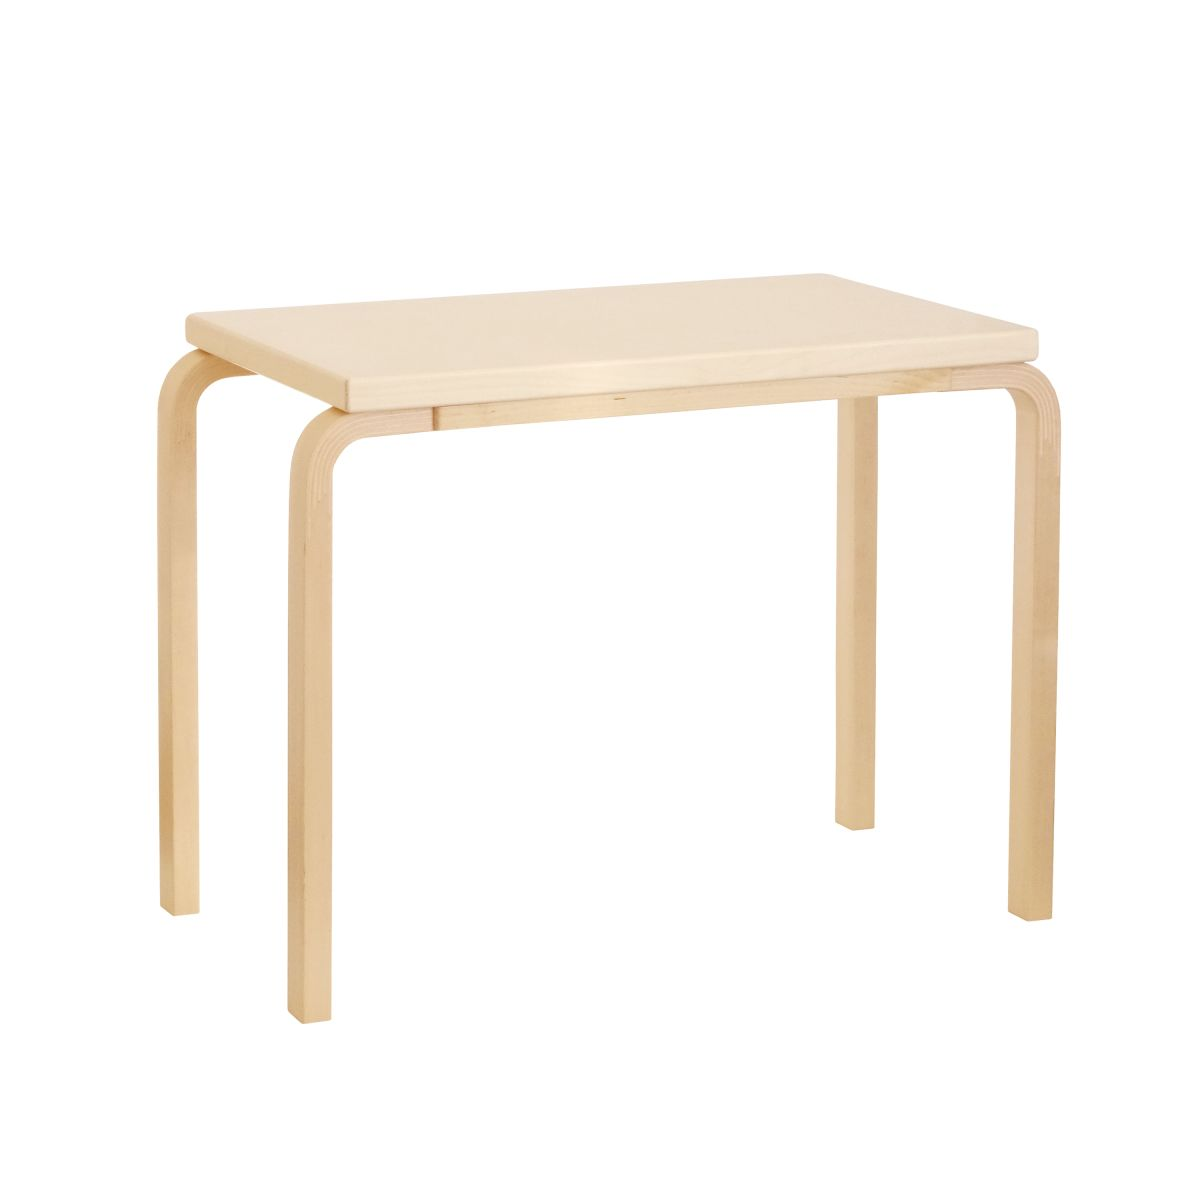 Nesting-table-88A-2995775